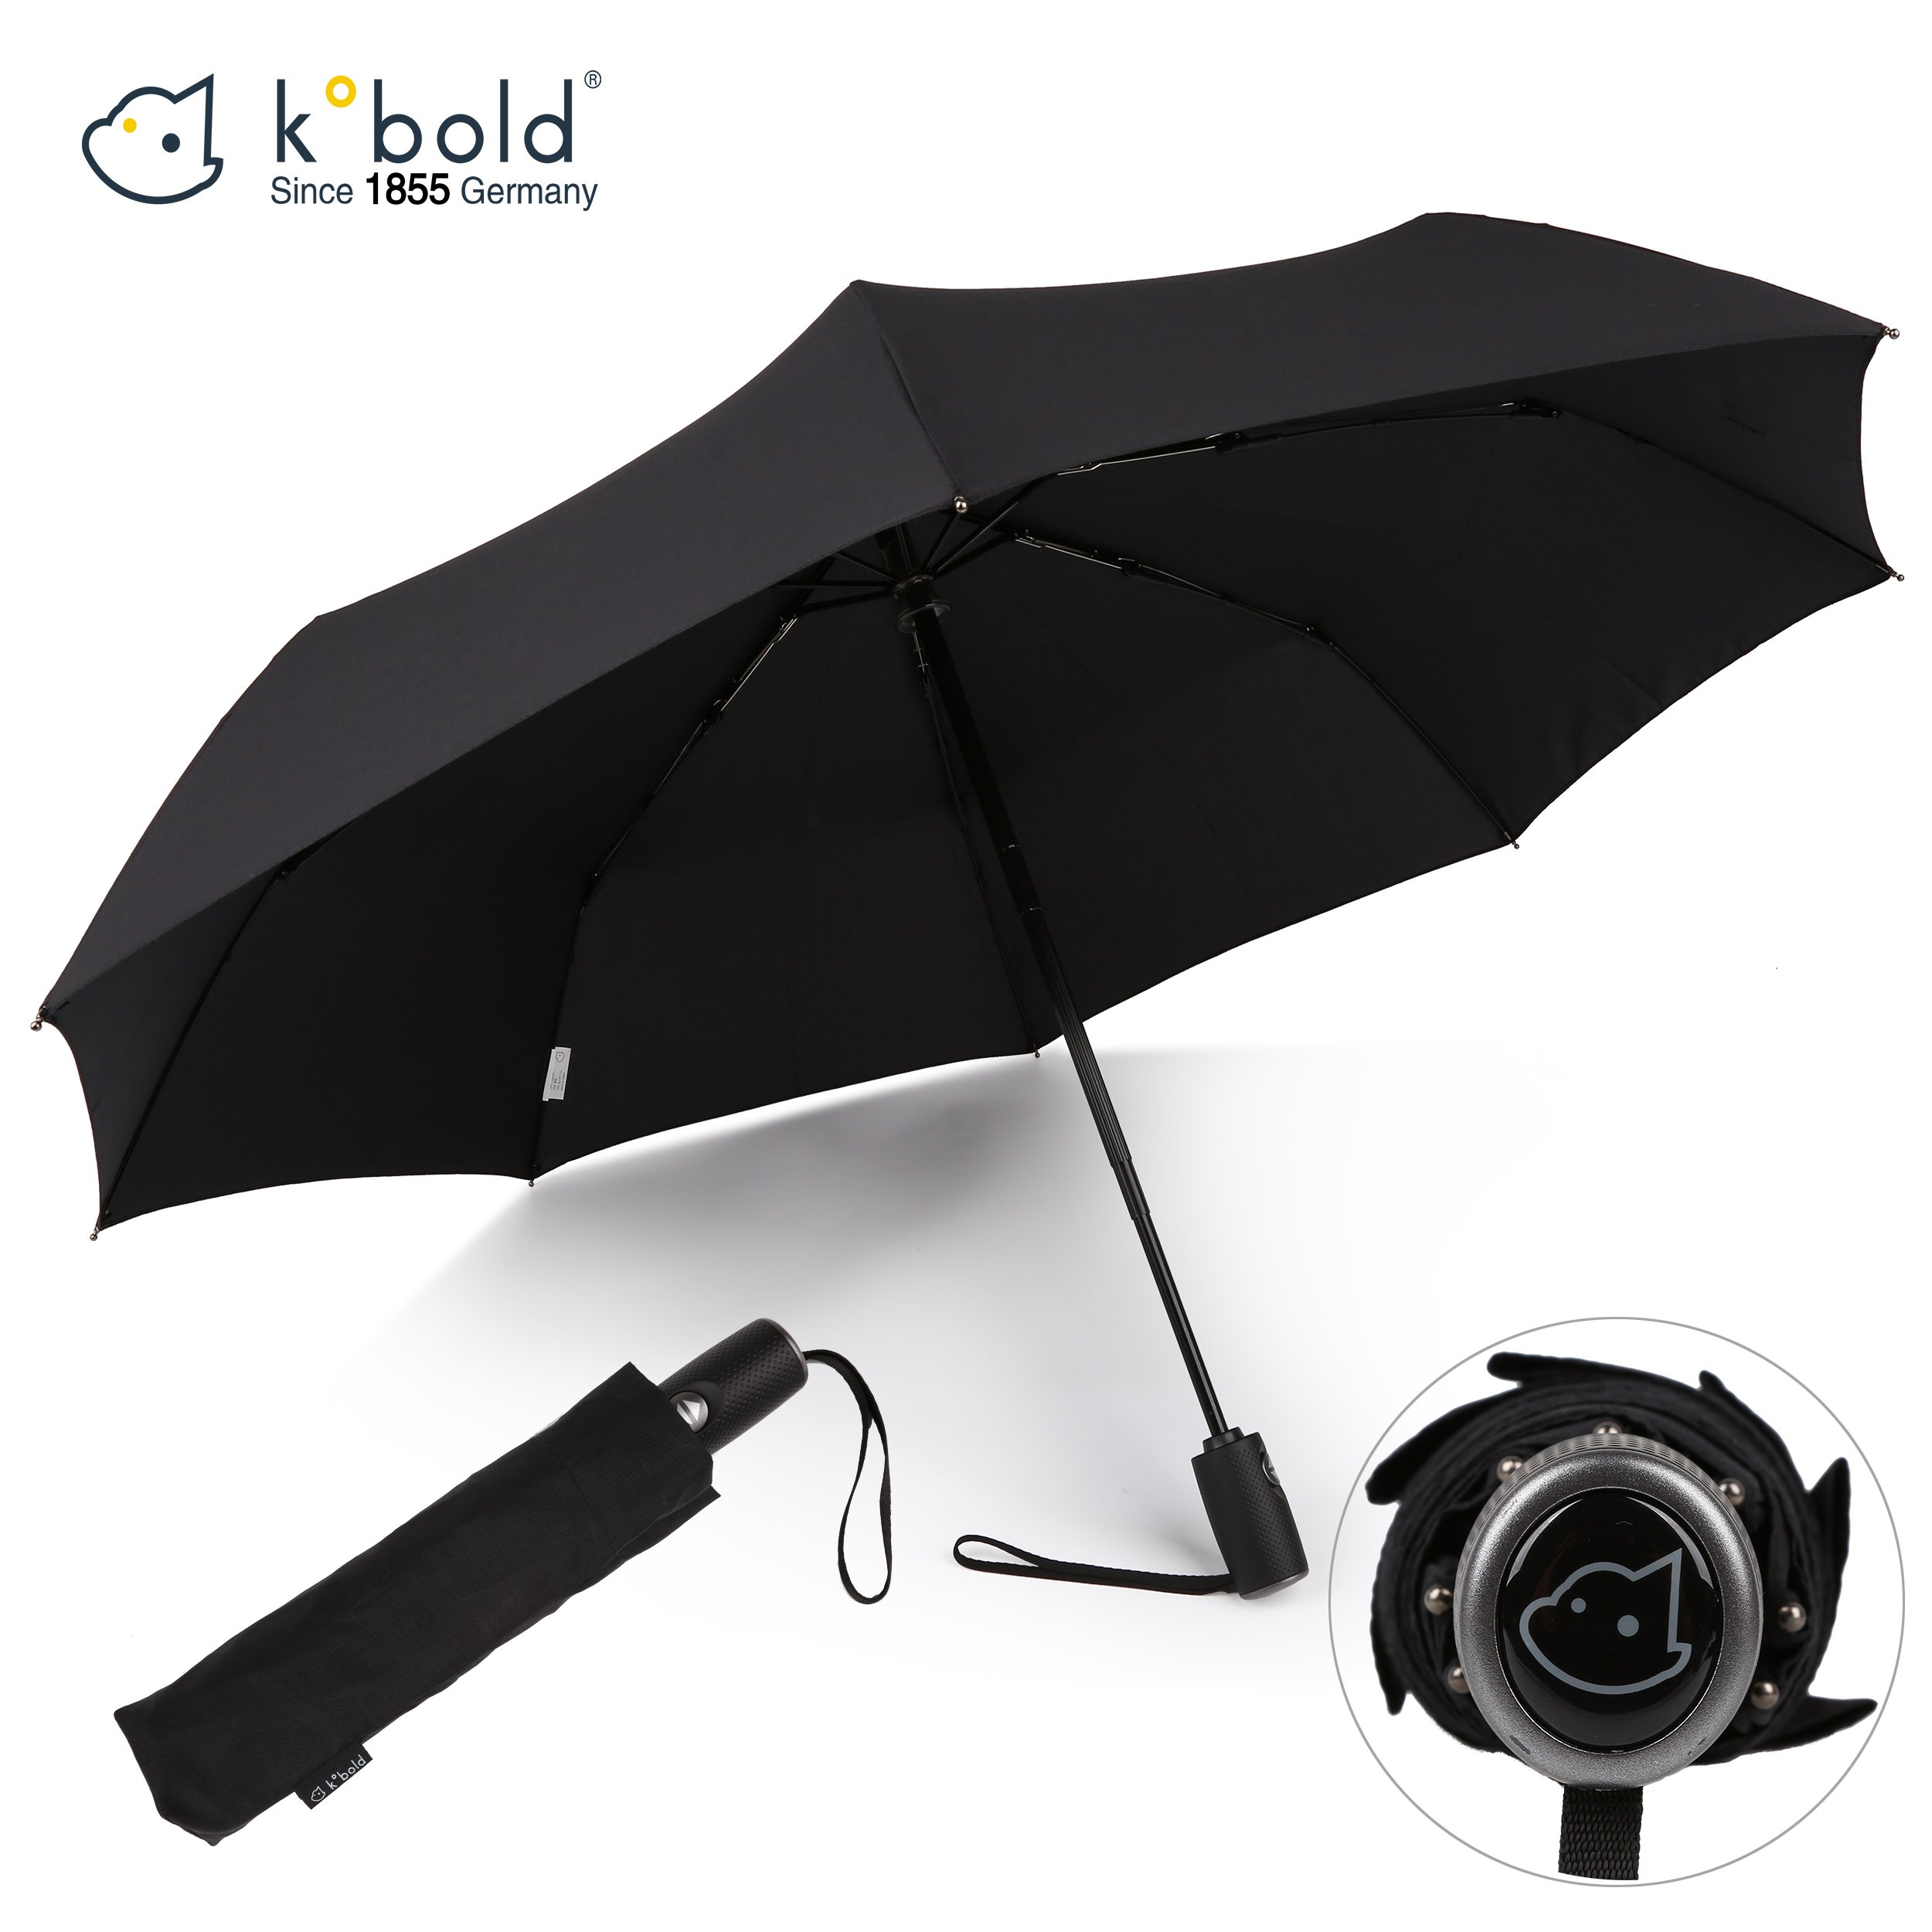 Kobold Business Travel Umbrella Automatic Windproof Foldable Auto Open Close Strong Lightweight Umbrellas for Men Black Teflon Coating Umbrellas